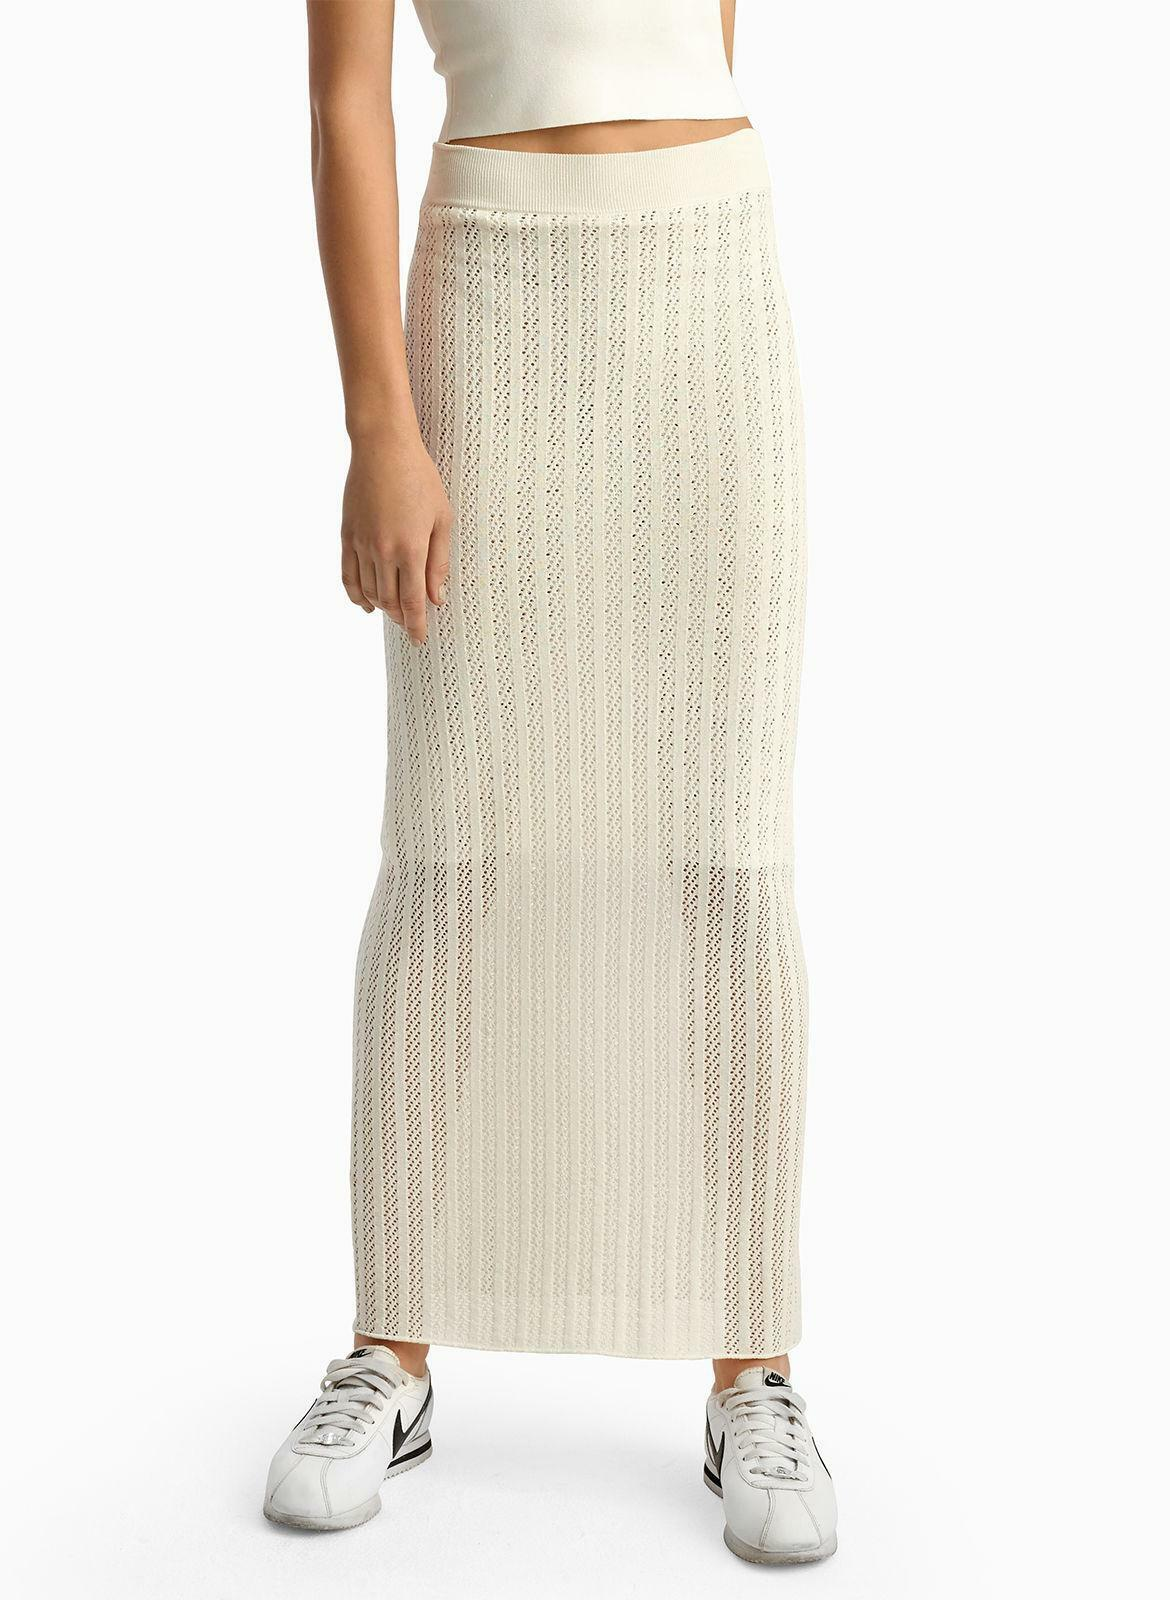 350 Rare Authentic A.L.C. Women's White Mesh Constructed Maxi Skirt